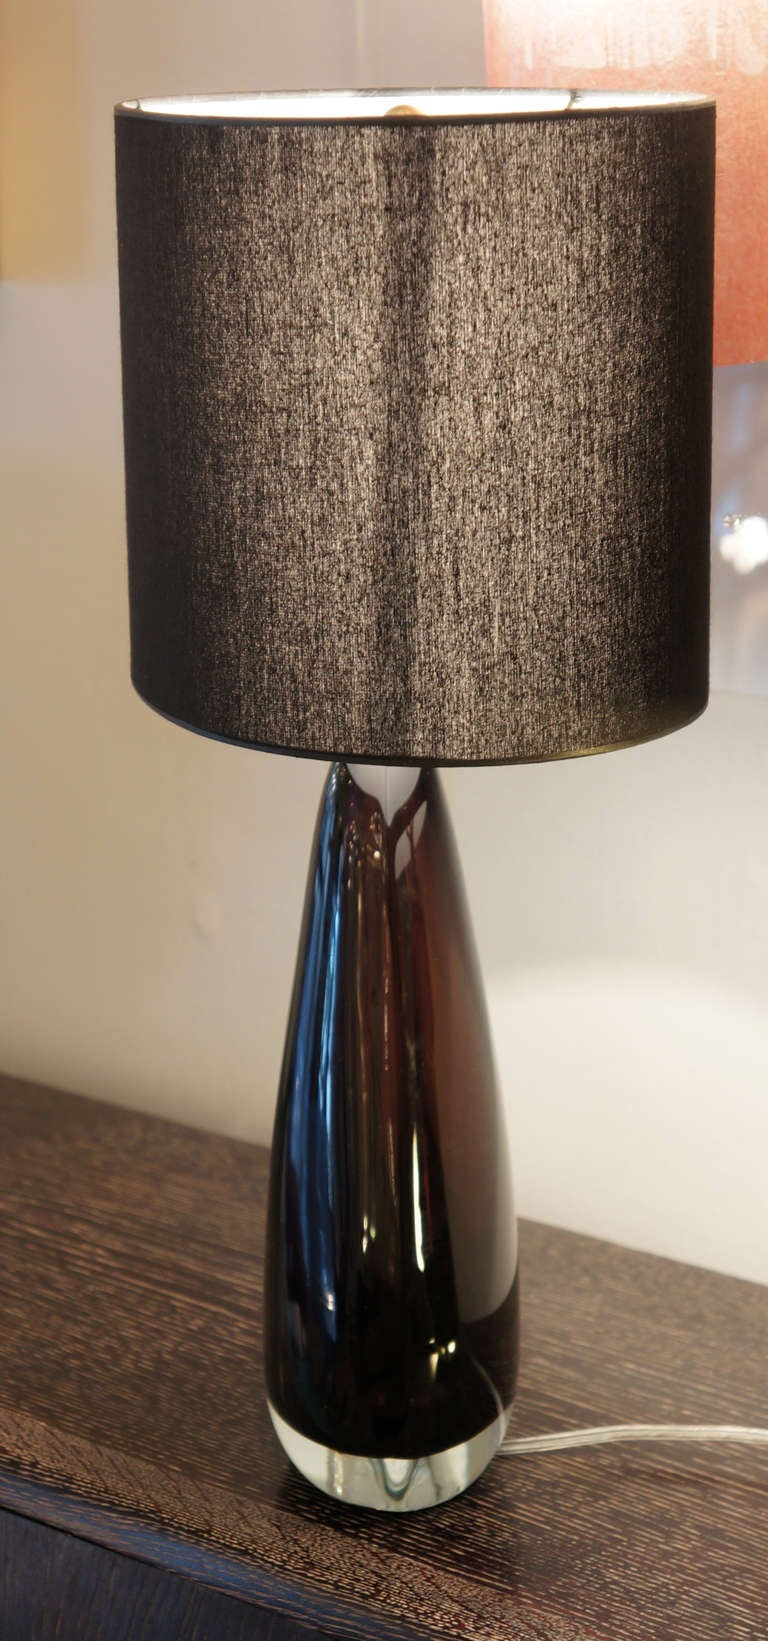 Pair of flavio poli for seguso aubergine table lamps at 1stdibs italian pair of flavio poli for seguso aubergine table lamps for sale mozeypictures Image collections